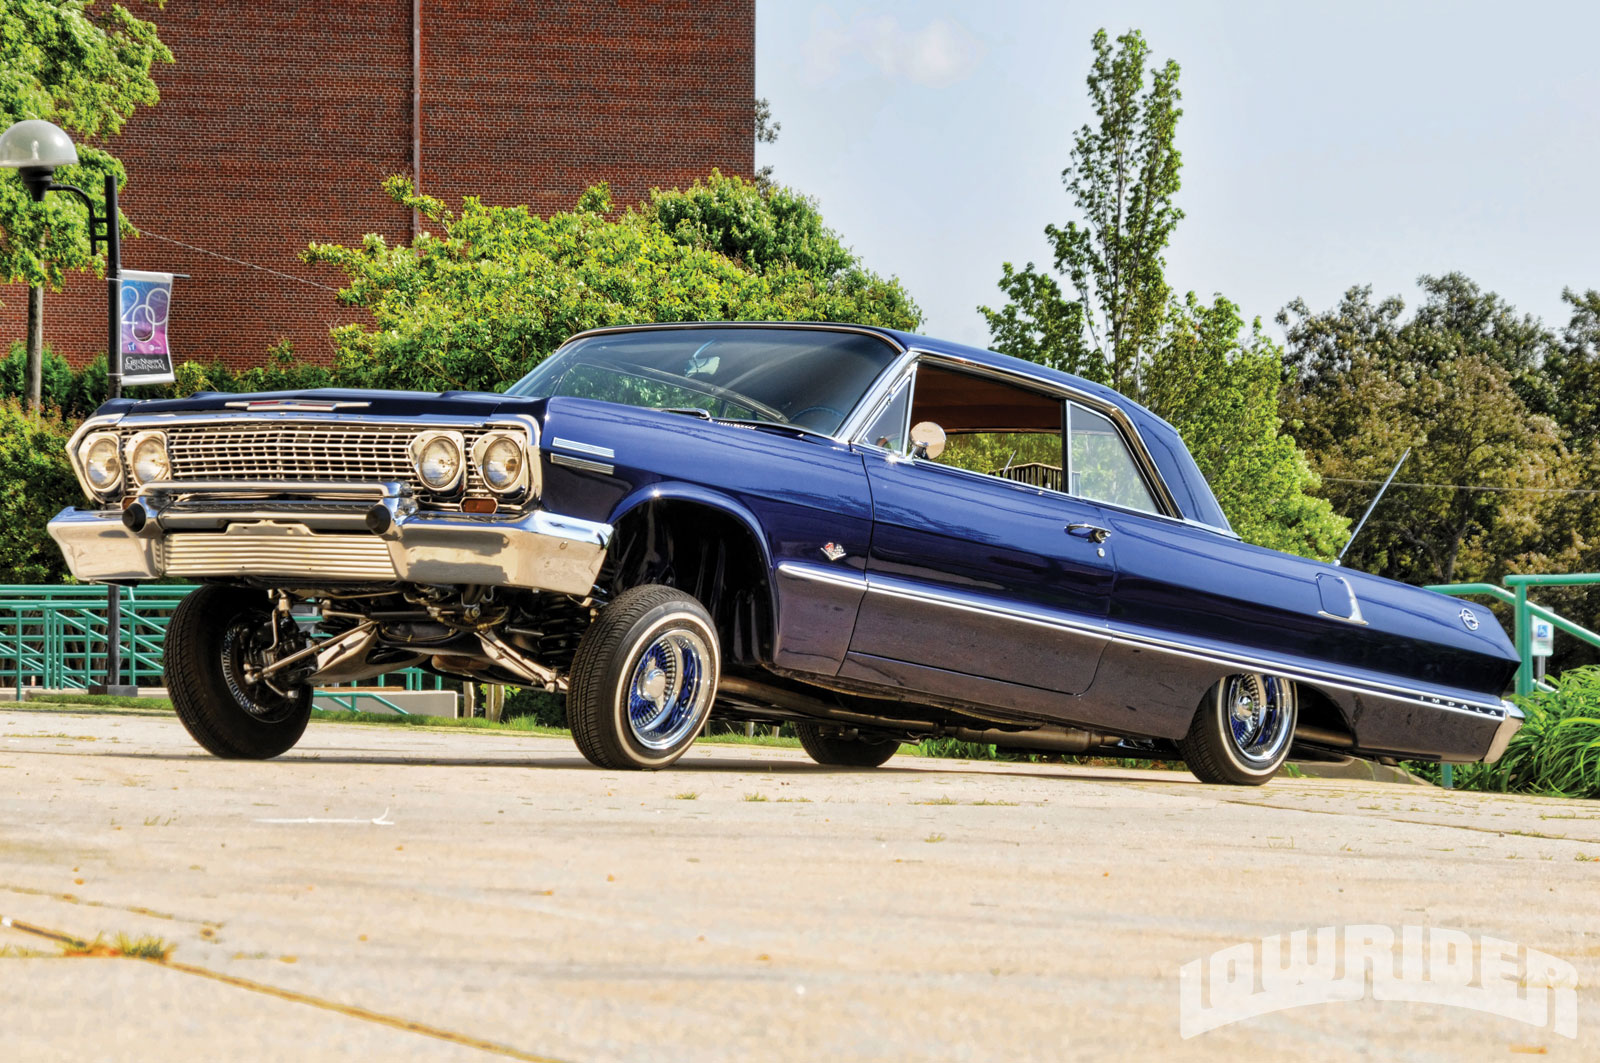 1984 Buick Regal - Lowrider on the Blvd - Lowrider Magazine